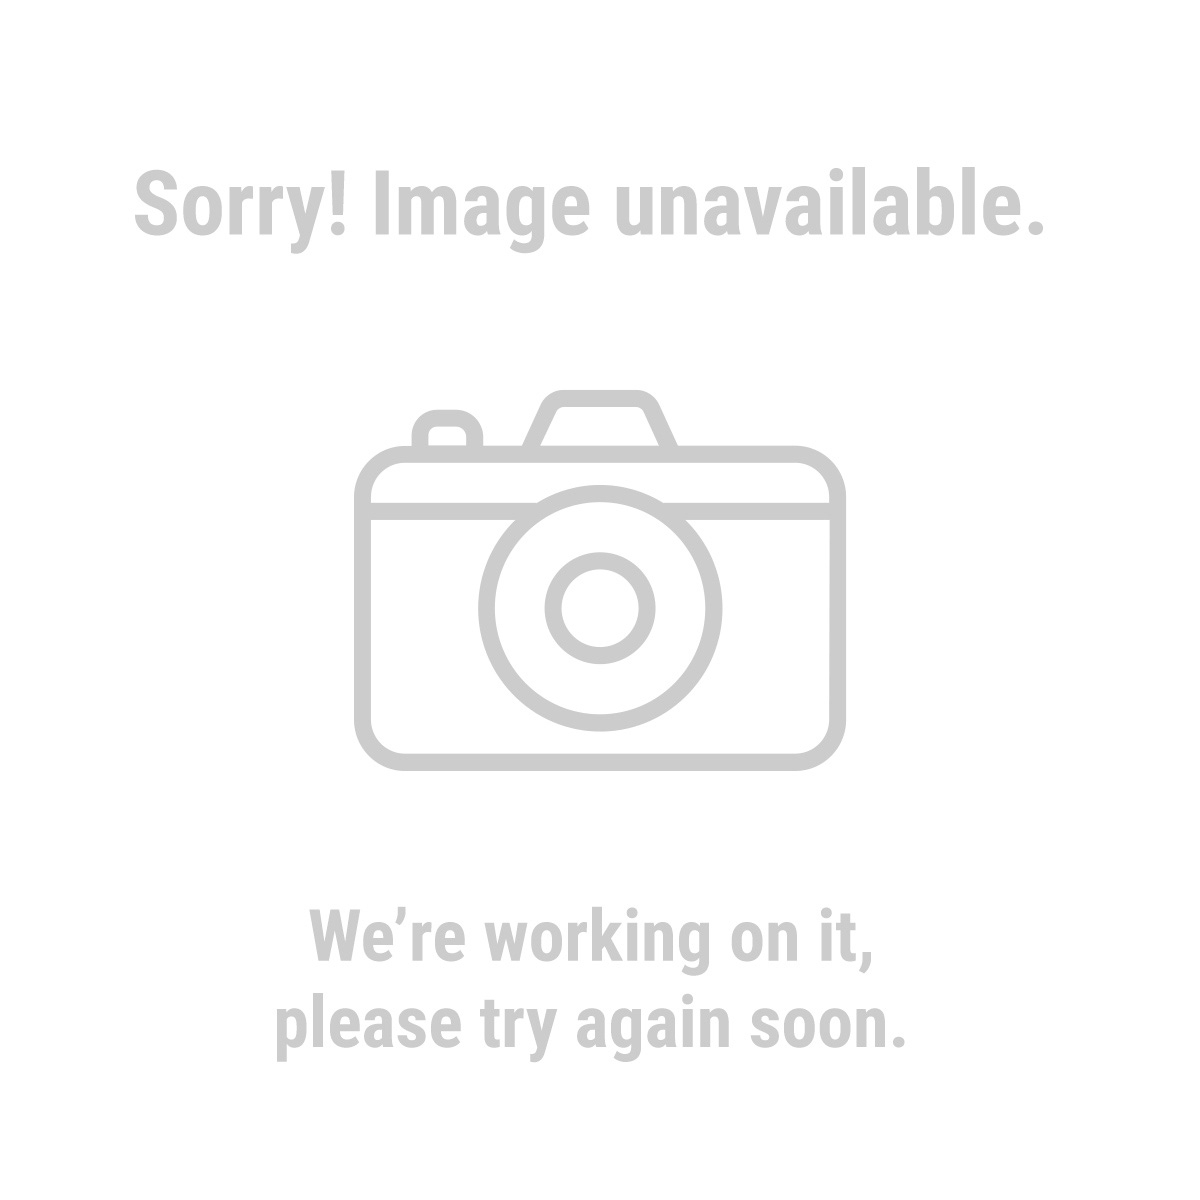 Harbor Freight Wood Splitter